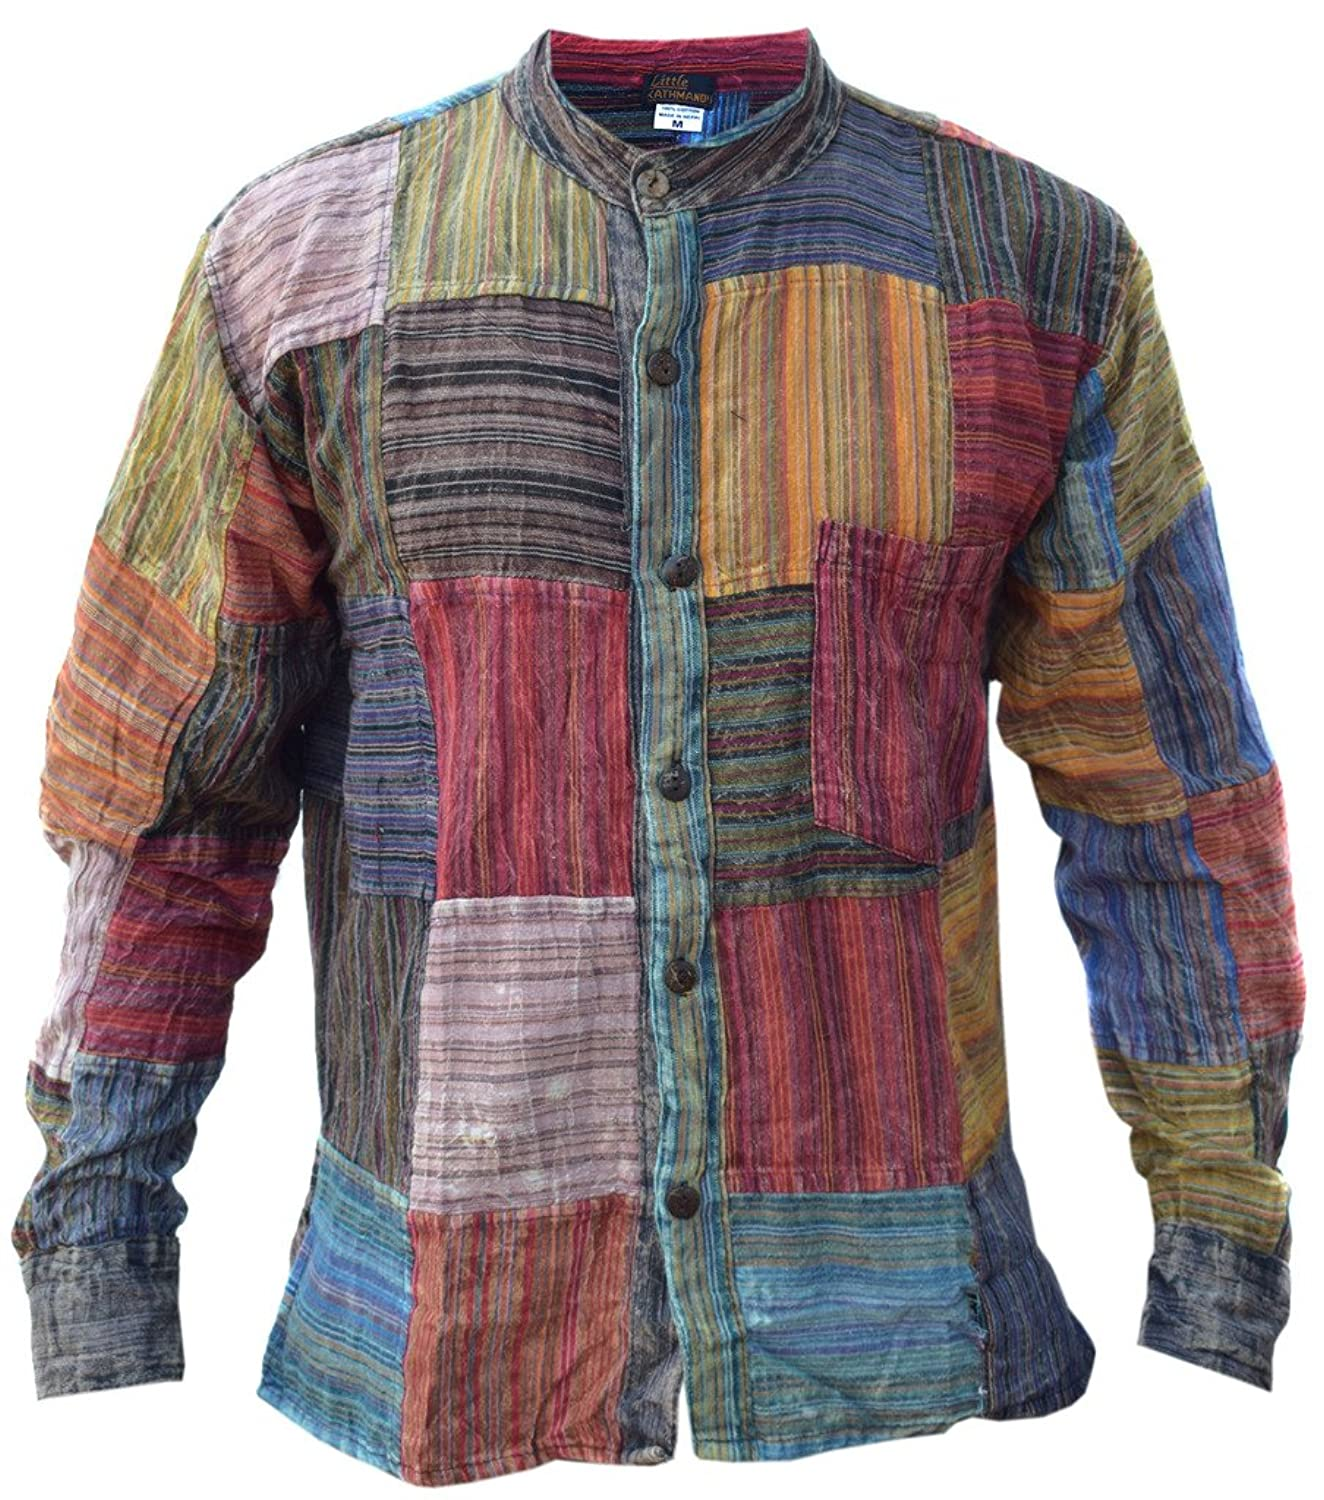 Little Kathmandu Men's Patchwork Striped Grandad Summer Festival Kurta Shirt